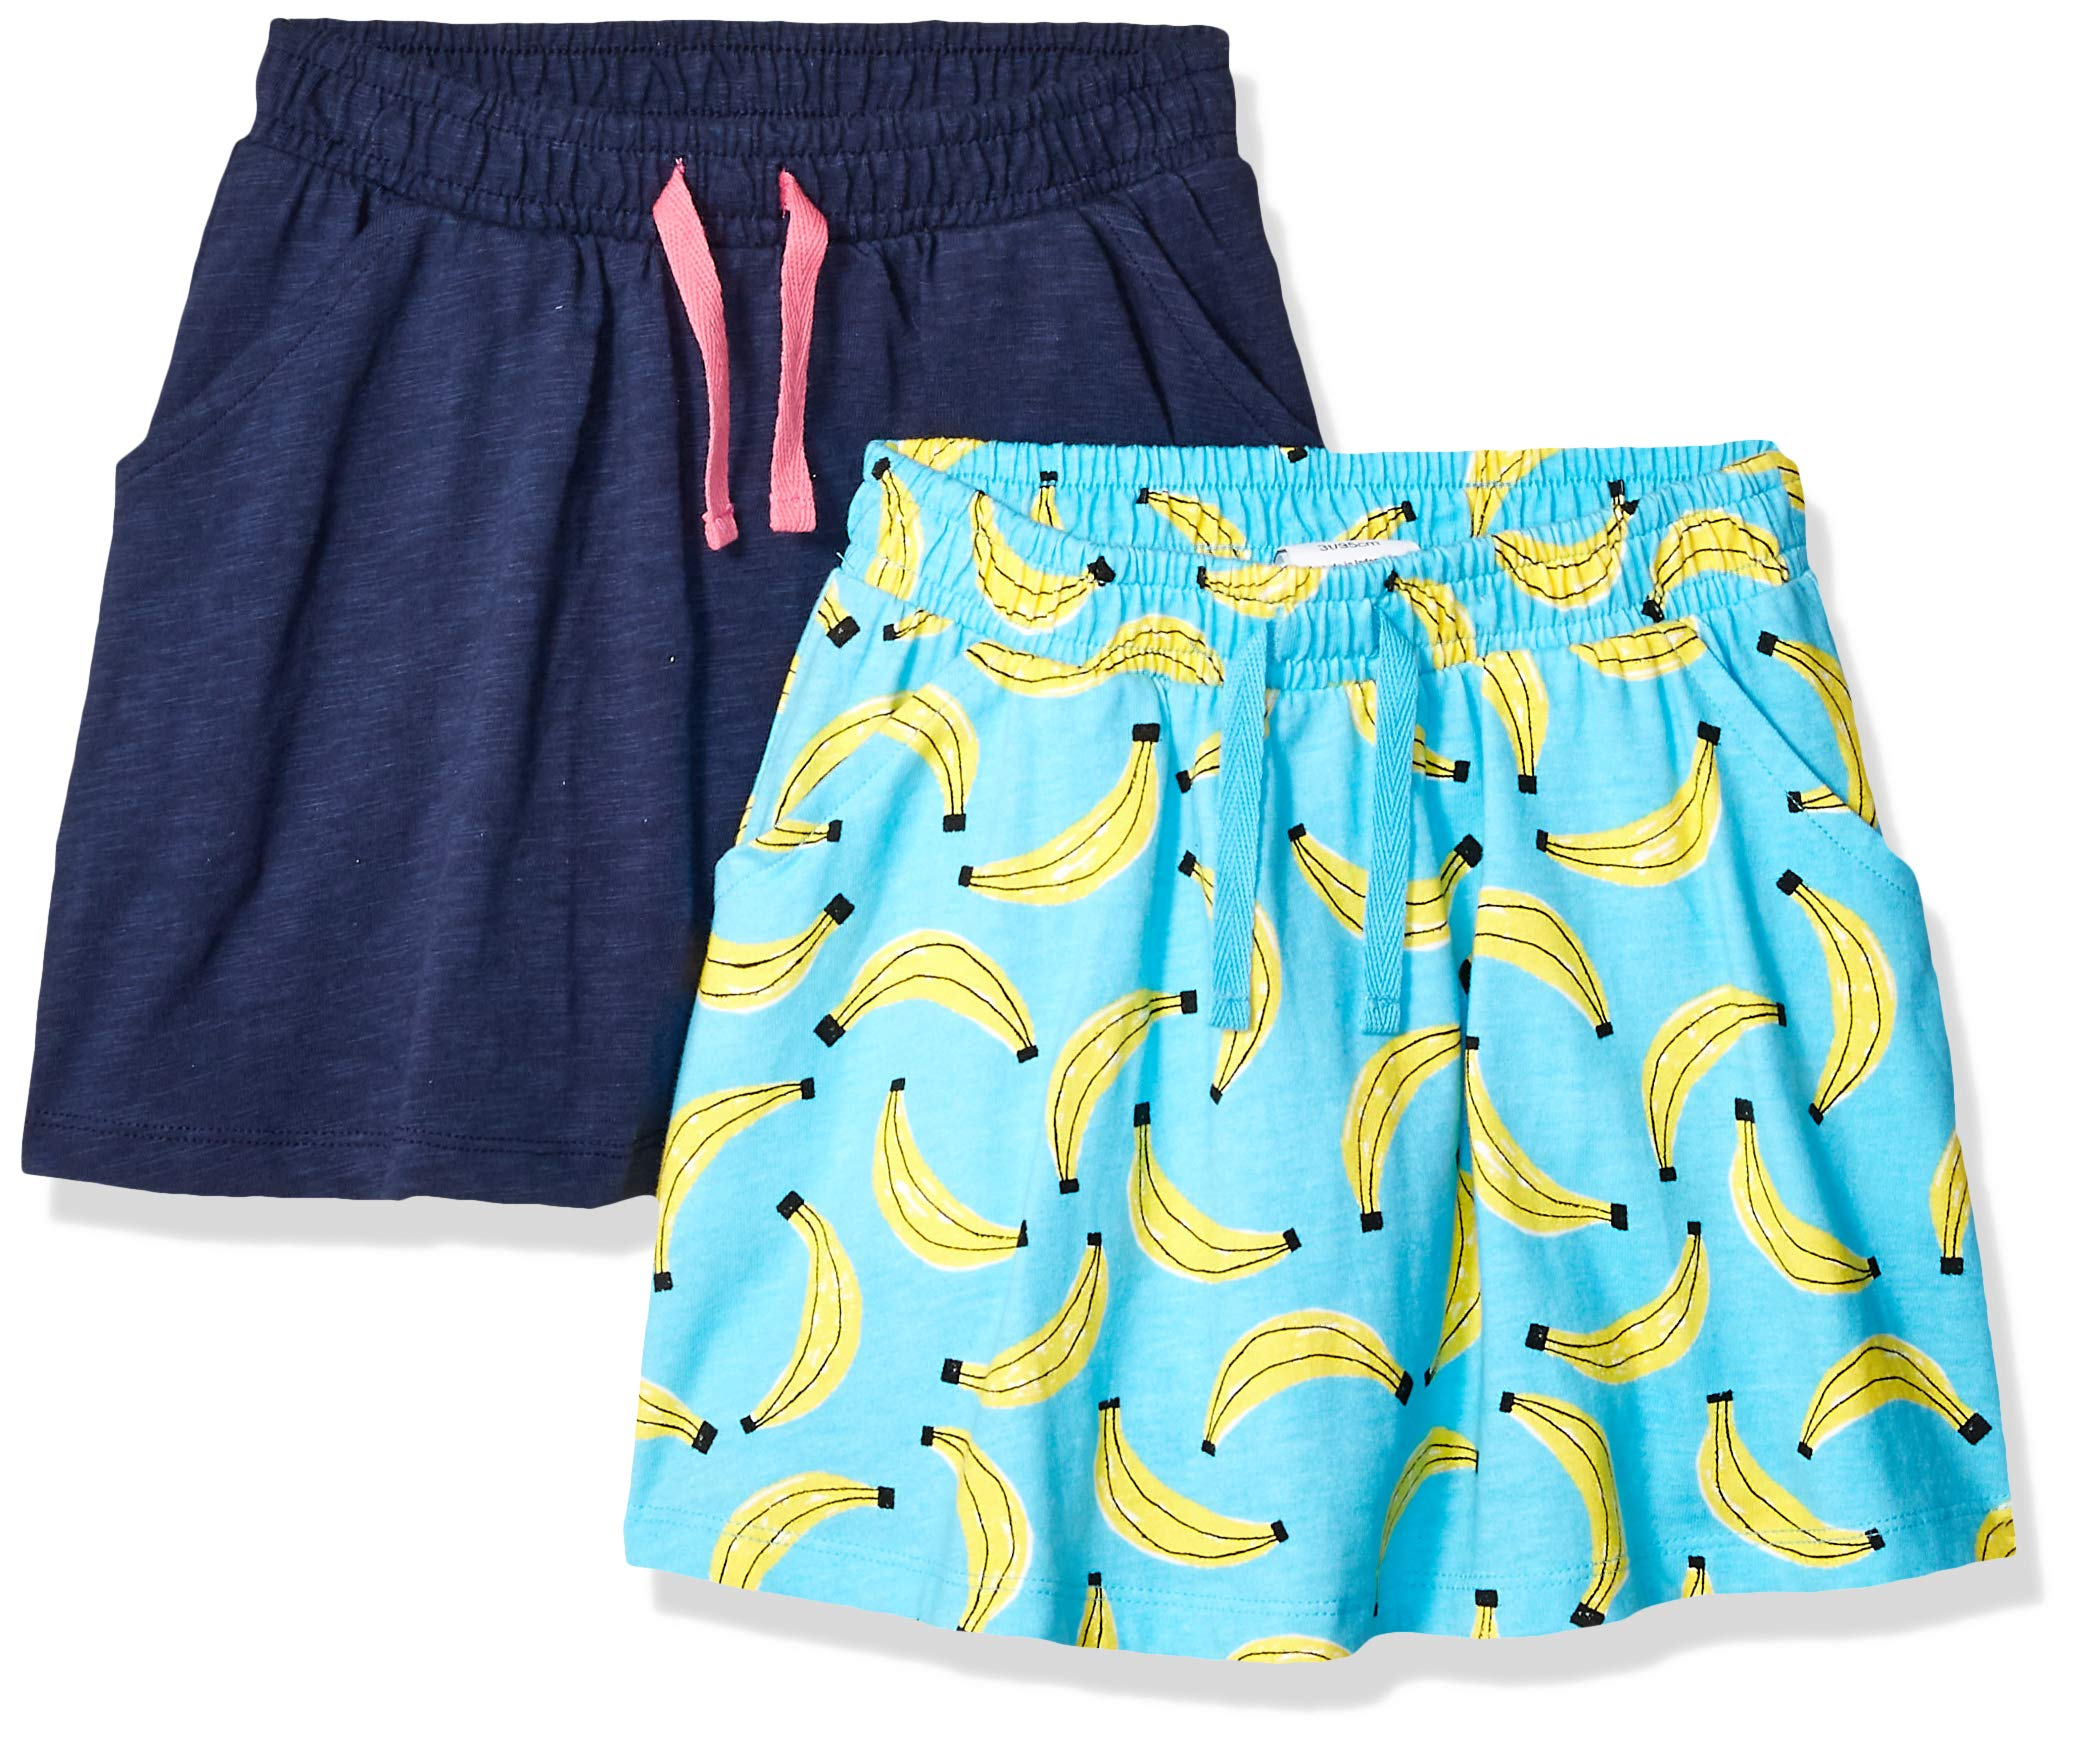 Amazon Brand - Spotted Zebra Little Girls' 2-Pack Twirl Scooter Skirts, Banana/Navy, X-Small (4-5) by Spotted Zebra